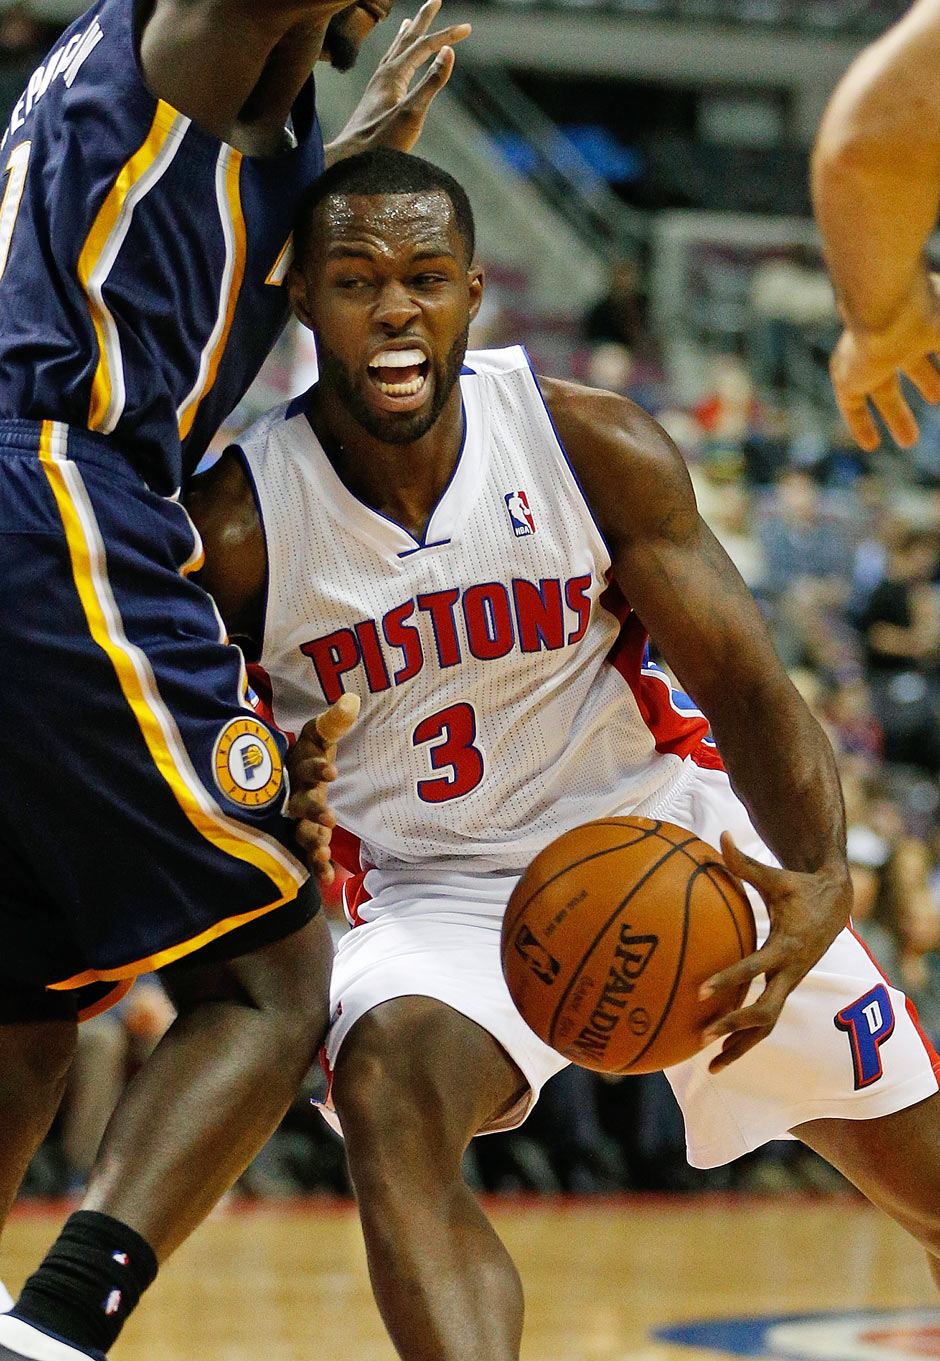 Bank: Rodney Stuckey (Shooting Guard, 14,0 Punkte, 2,2 Assists)